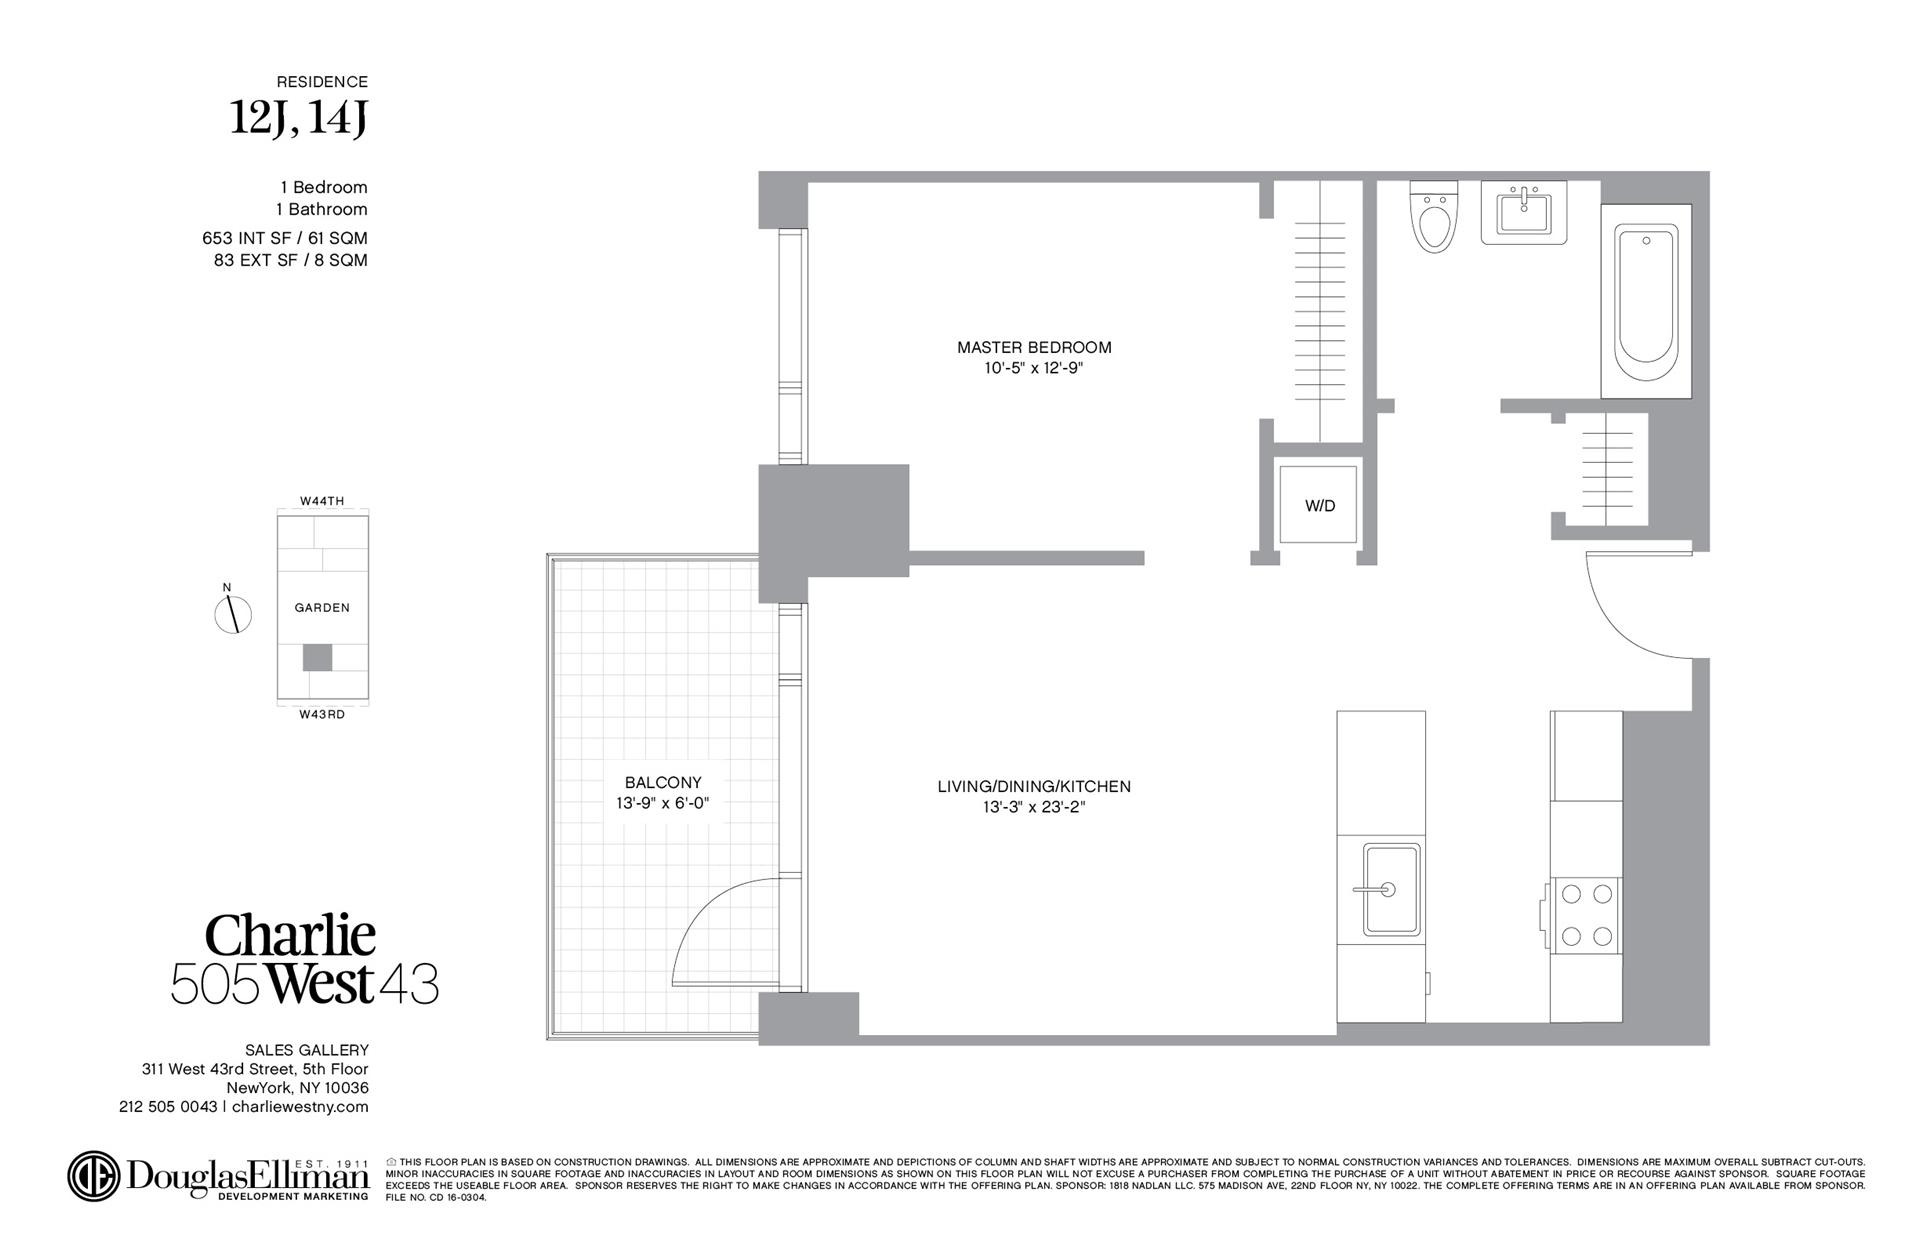 Floor plan of 505 West 43rd St, 12J - Clinton, New York